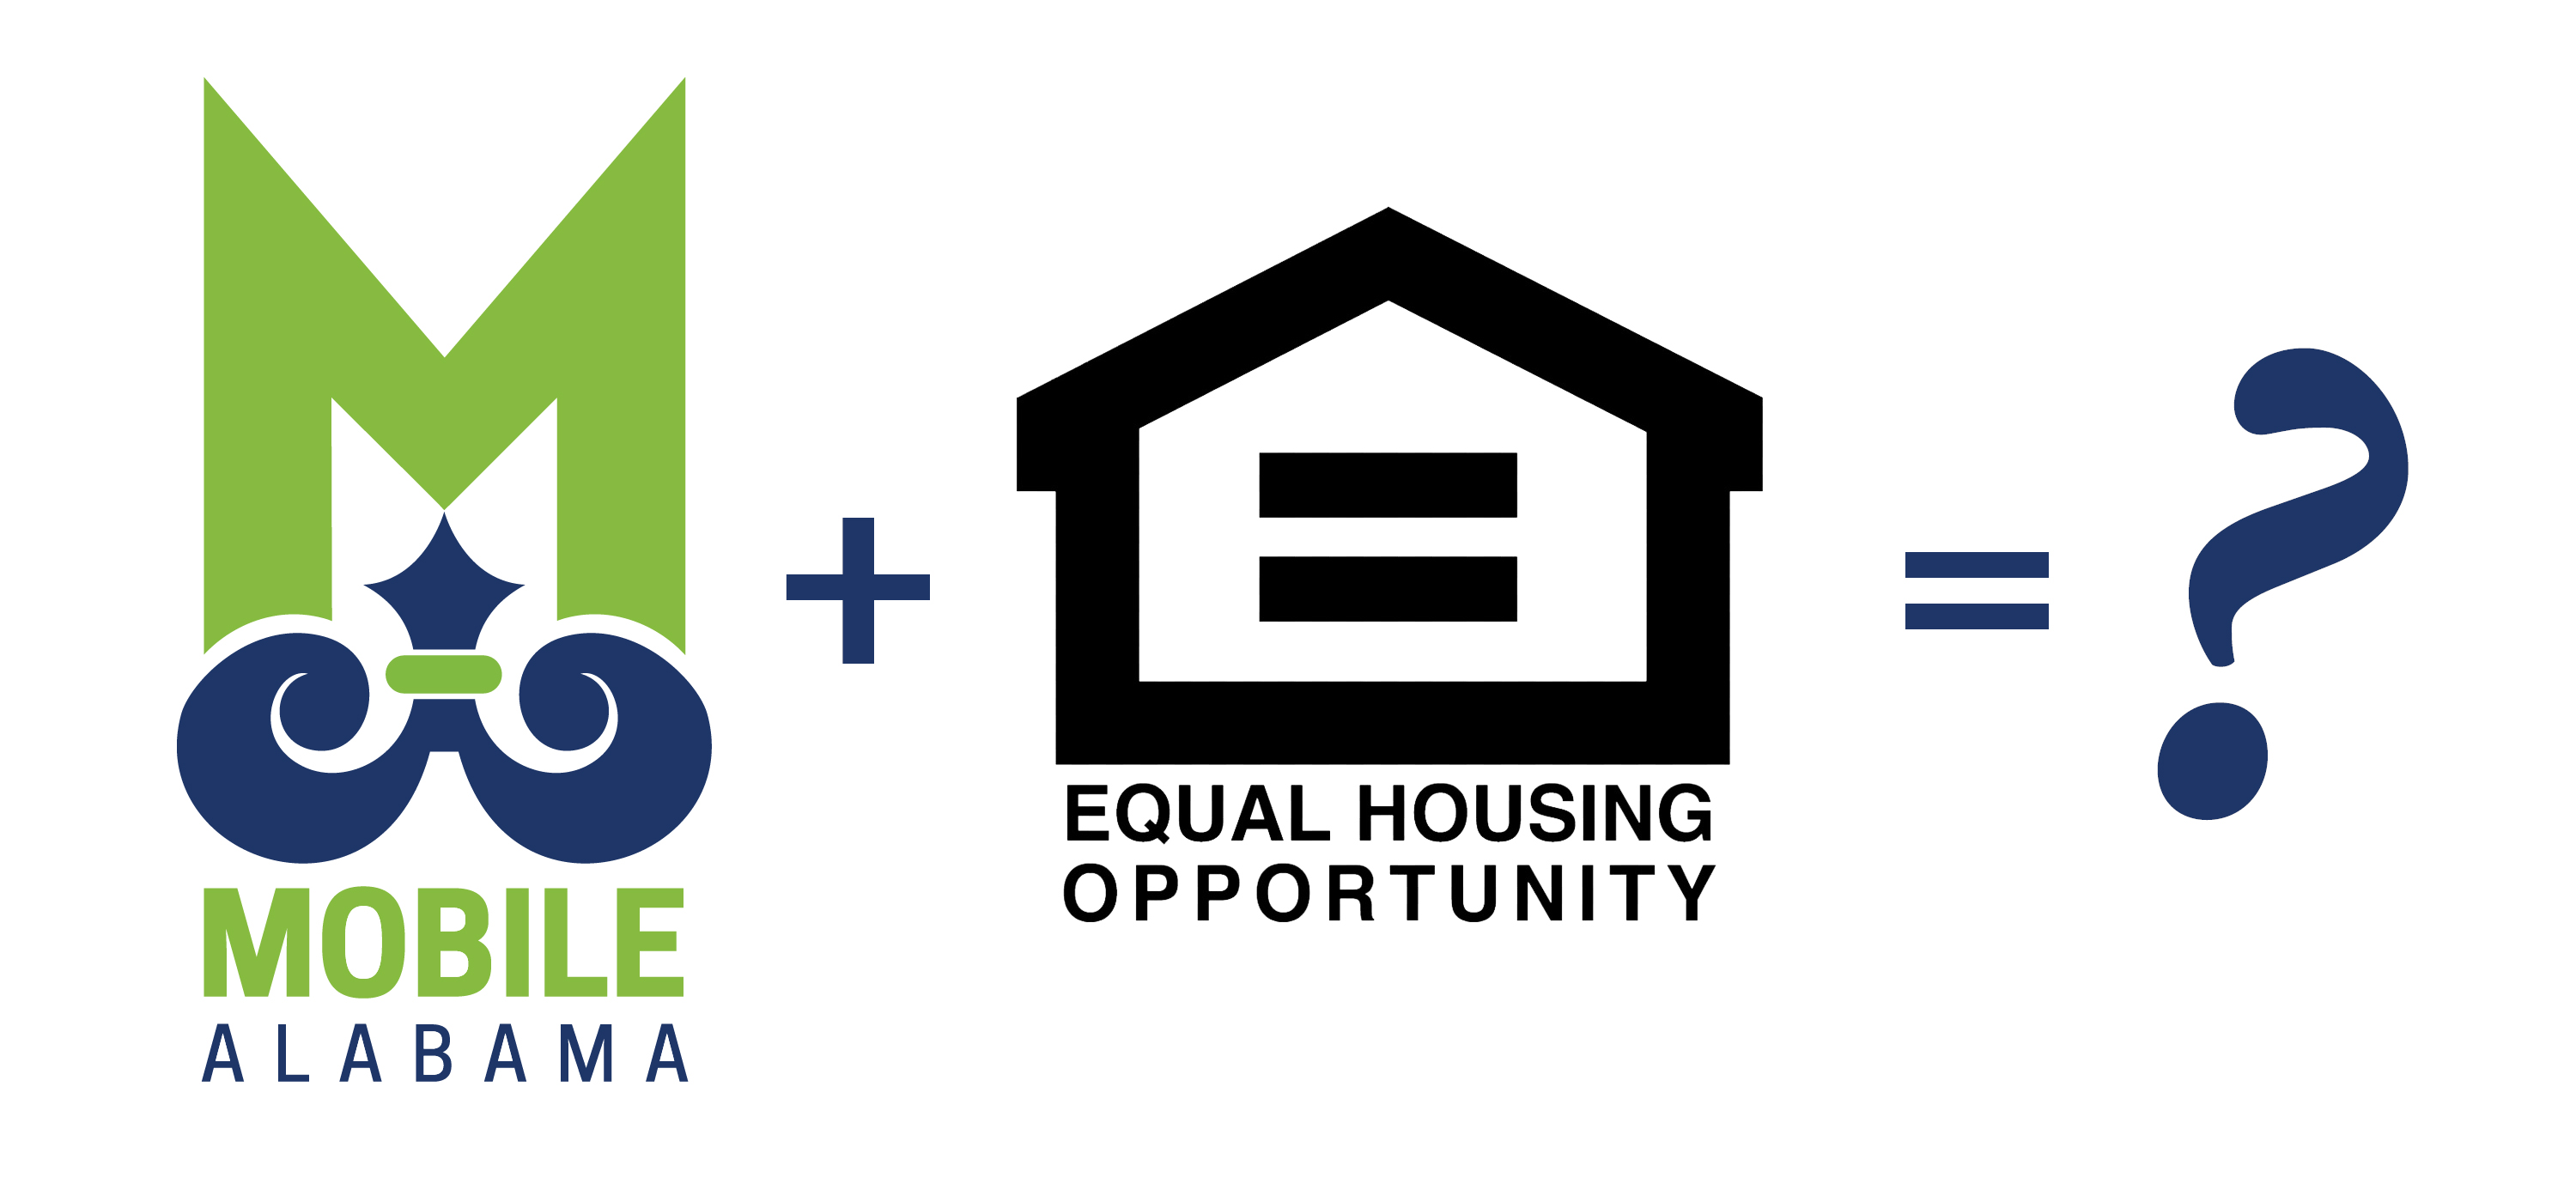 An equation depiction The City of Mobile logo plus the Fair Housing Equal Opportunity logo equating a question mark.